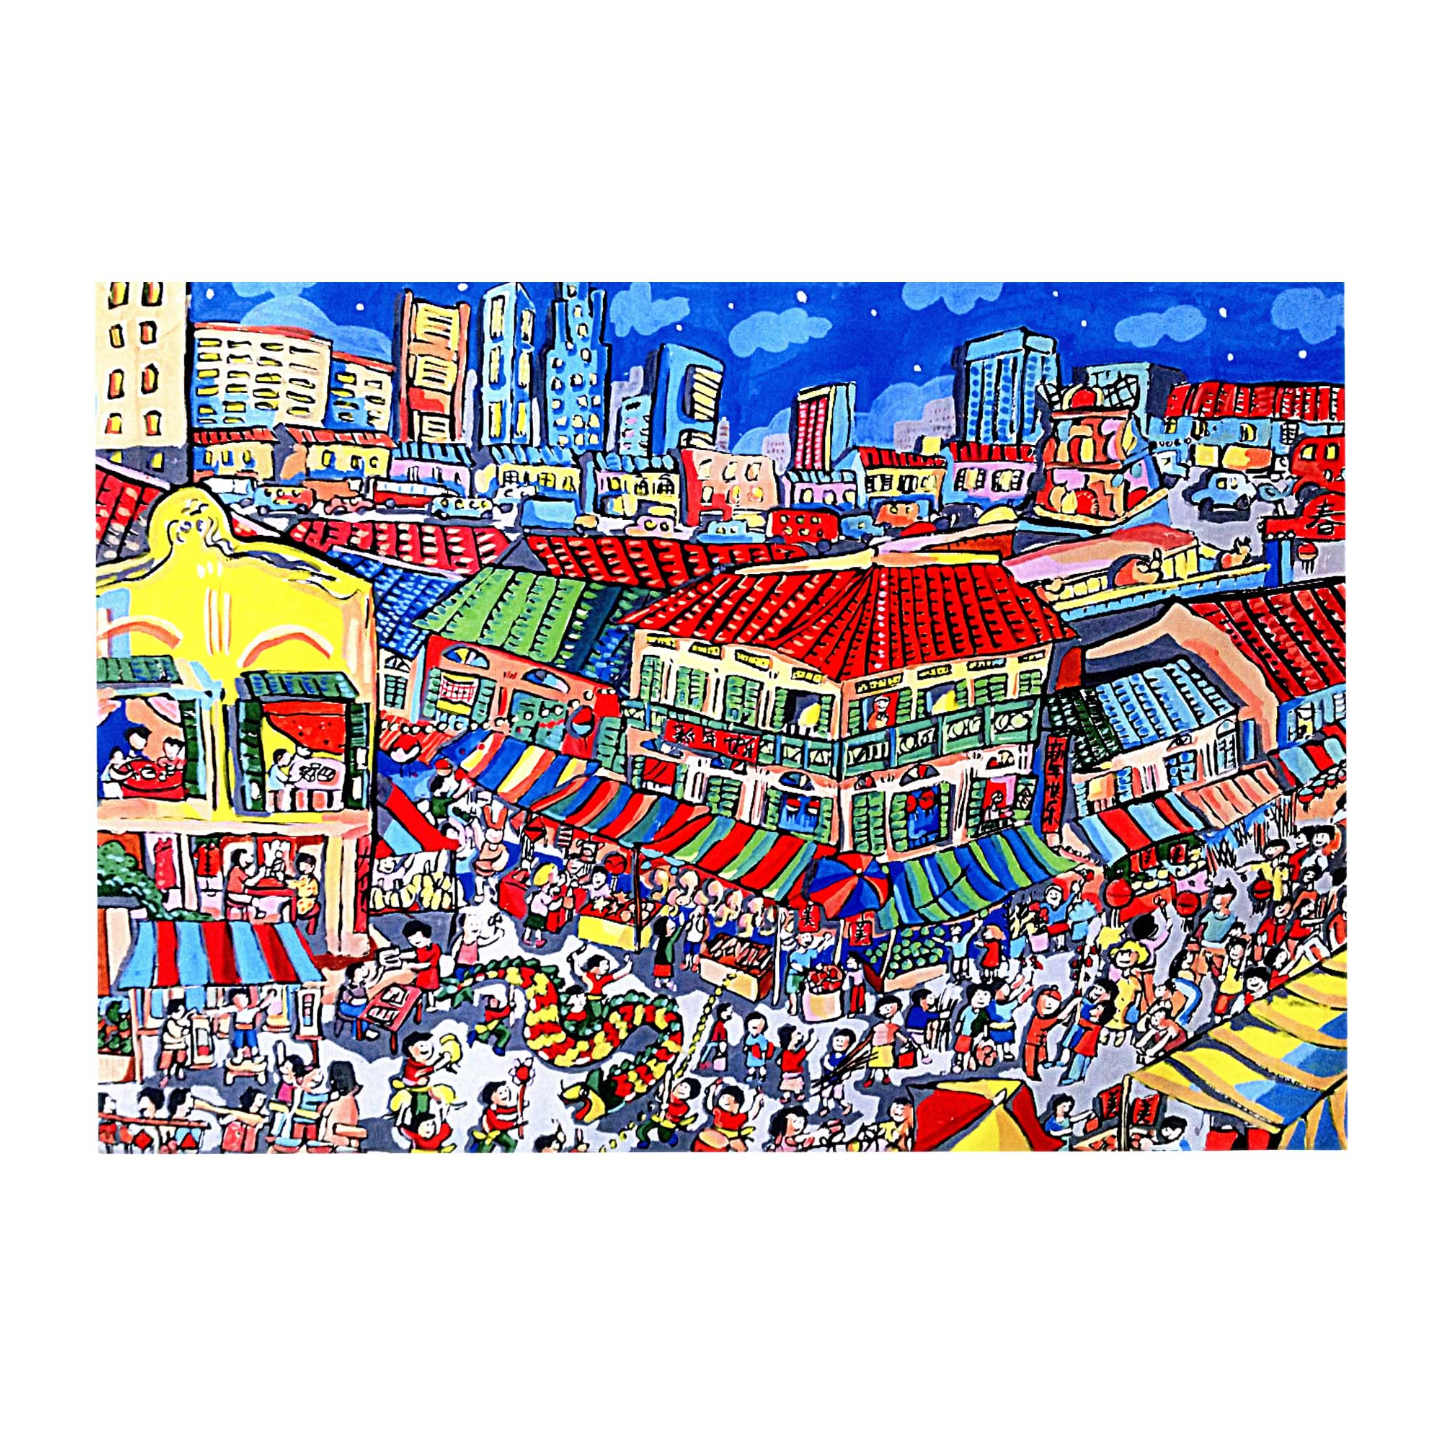 Heritage Postcard Chinese New Year at Chinatown by Patrick Yee